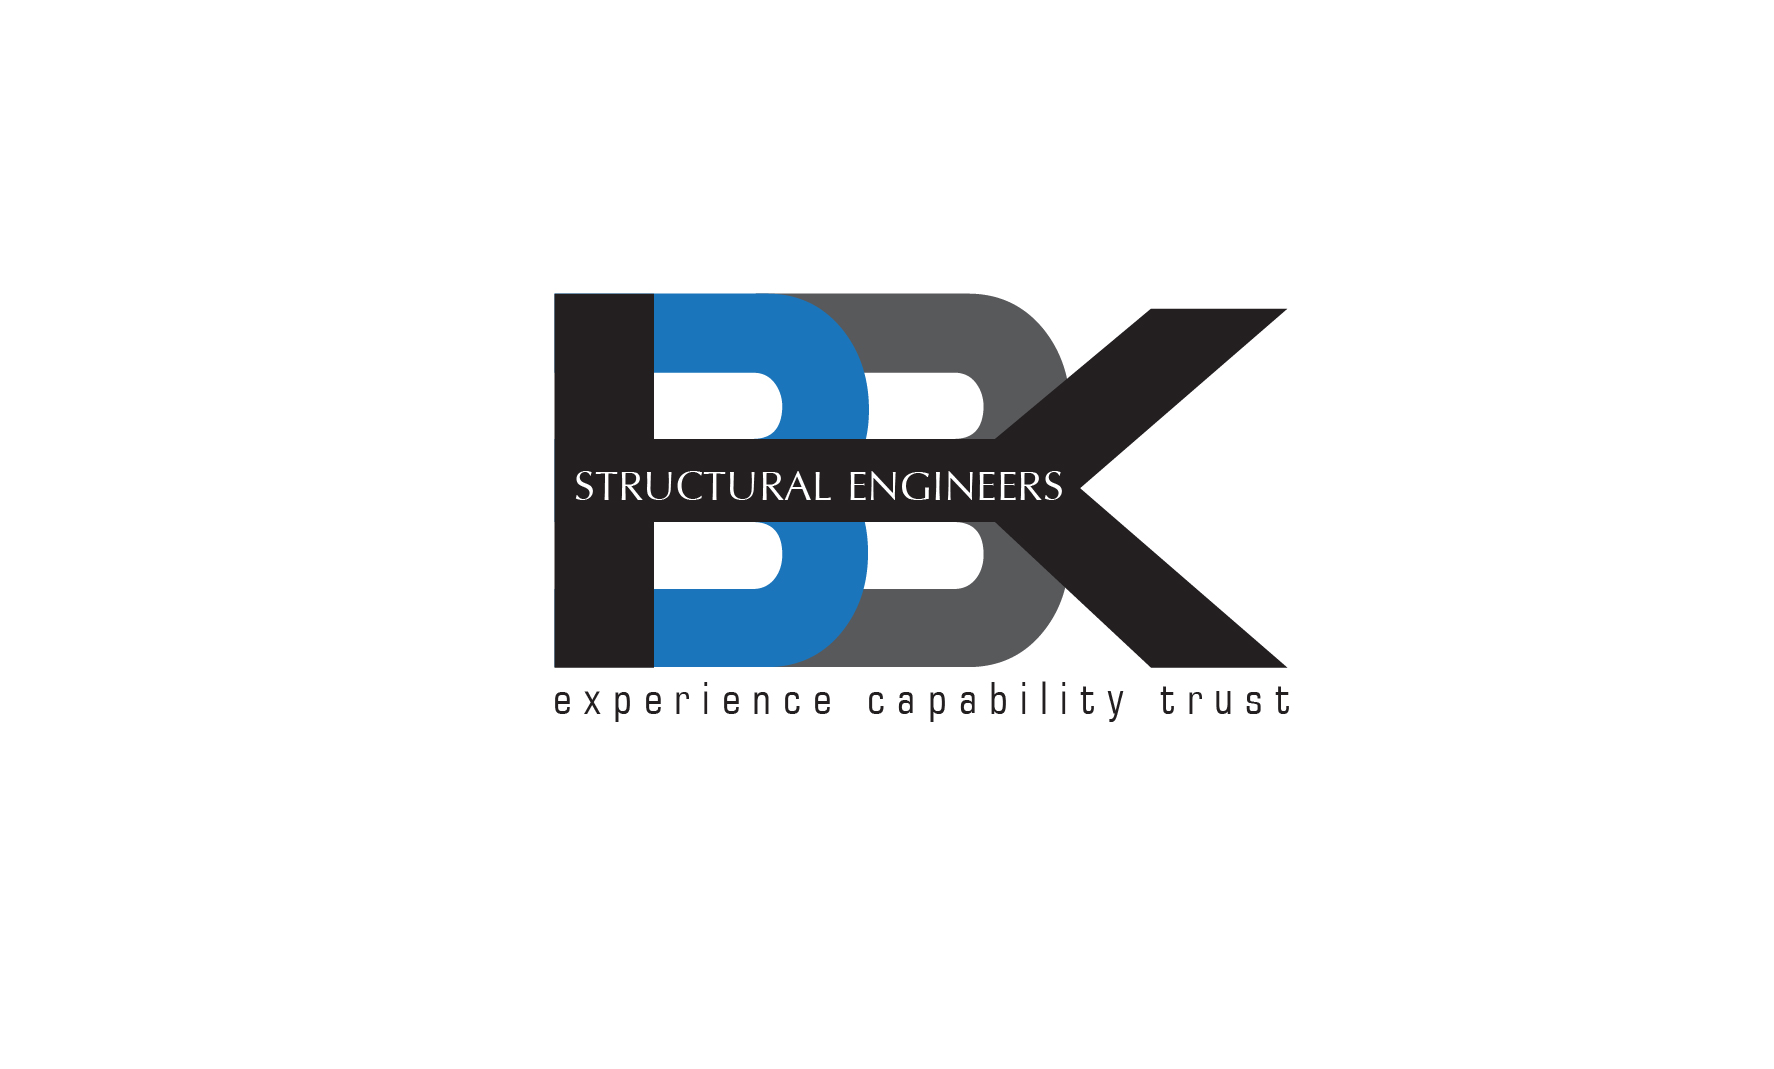 Logo Design by 3draw - Entry No. 27 in the Logo Design Contest Logo Design Needed for Exciting New Company BBK Consulting Engineers.